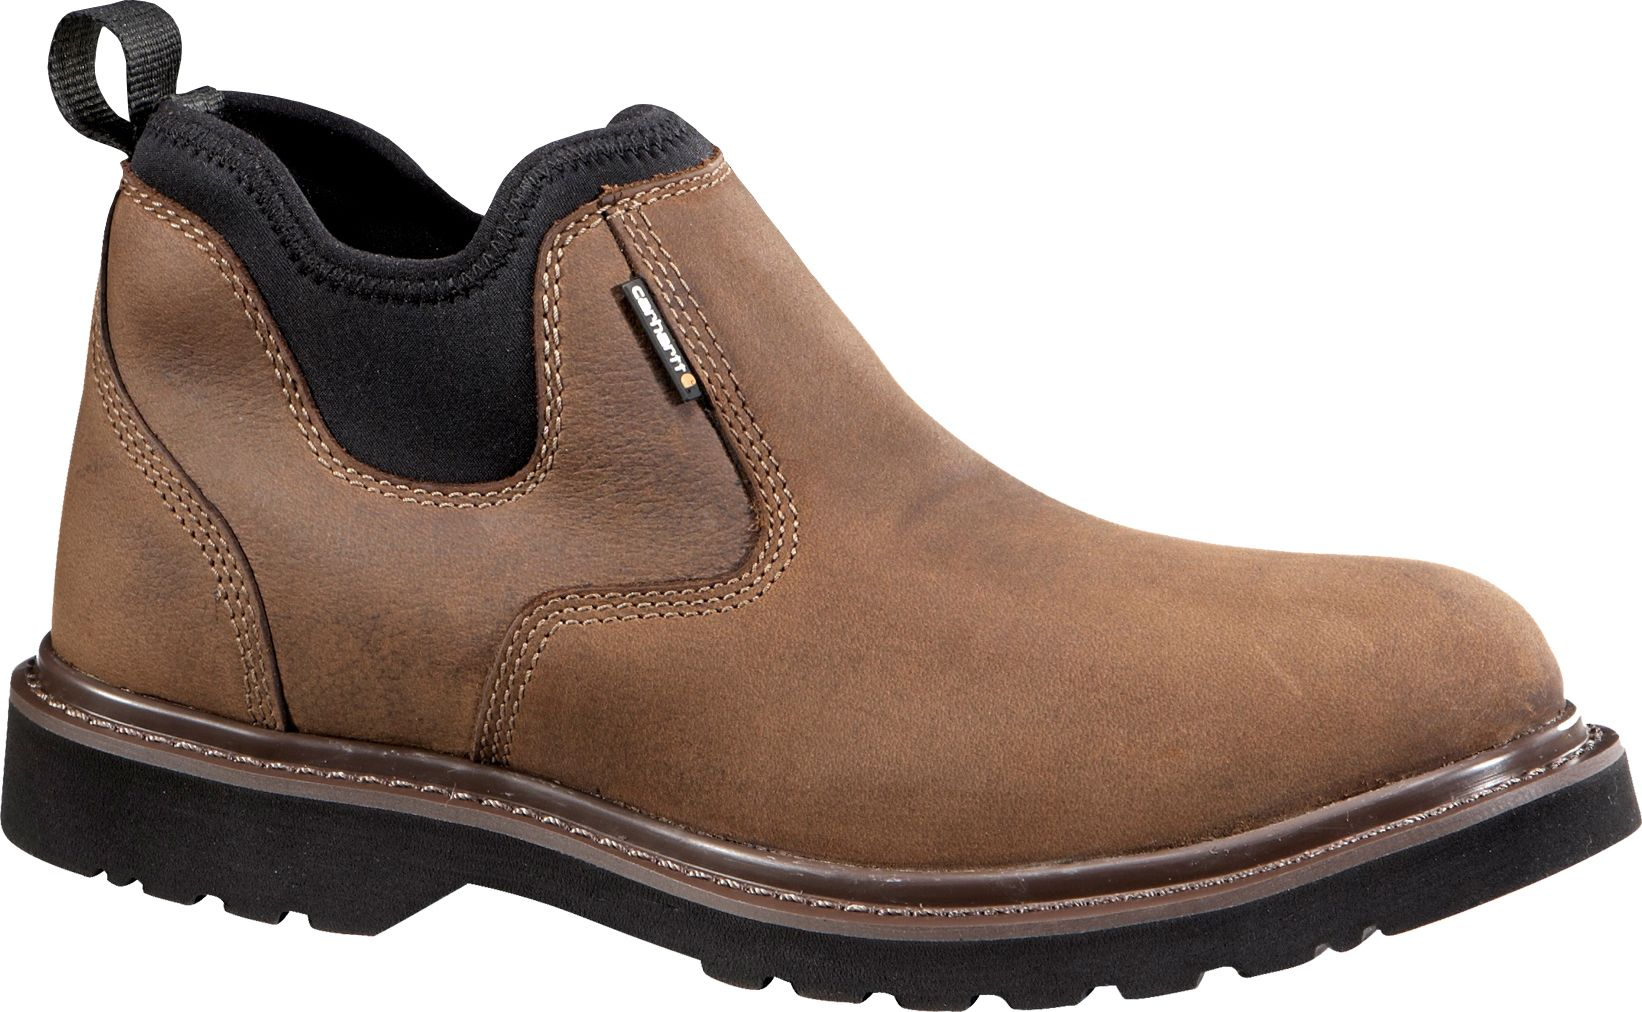 Carhartt Men&39s Romeo 4&39&39 Work Boots| DICK&39S Sporting Goods